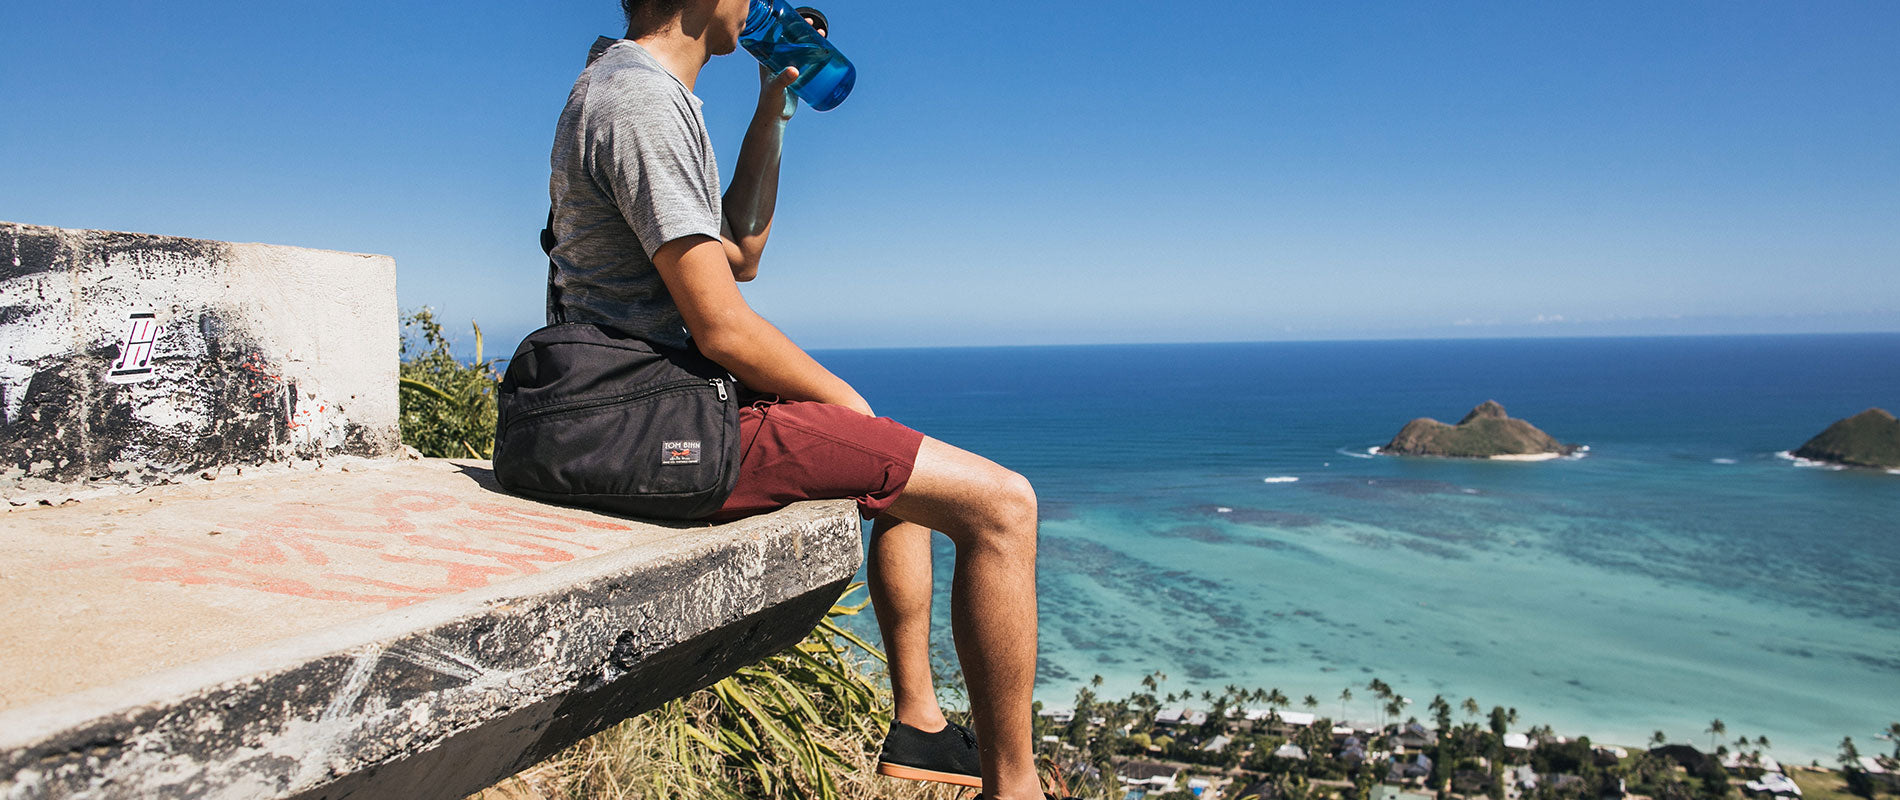 Packing Cube Shoulder Bag worn by a man resting after a climb which overlooks the ocean